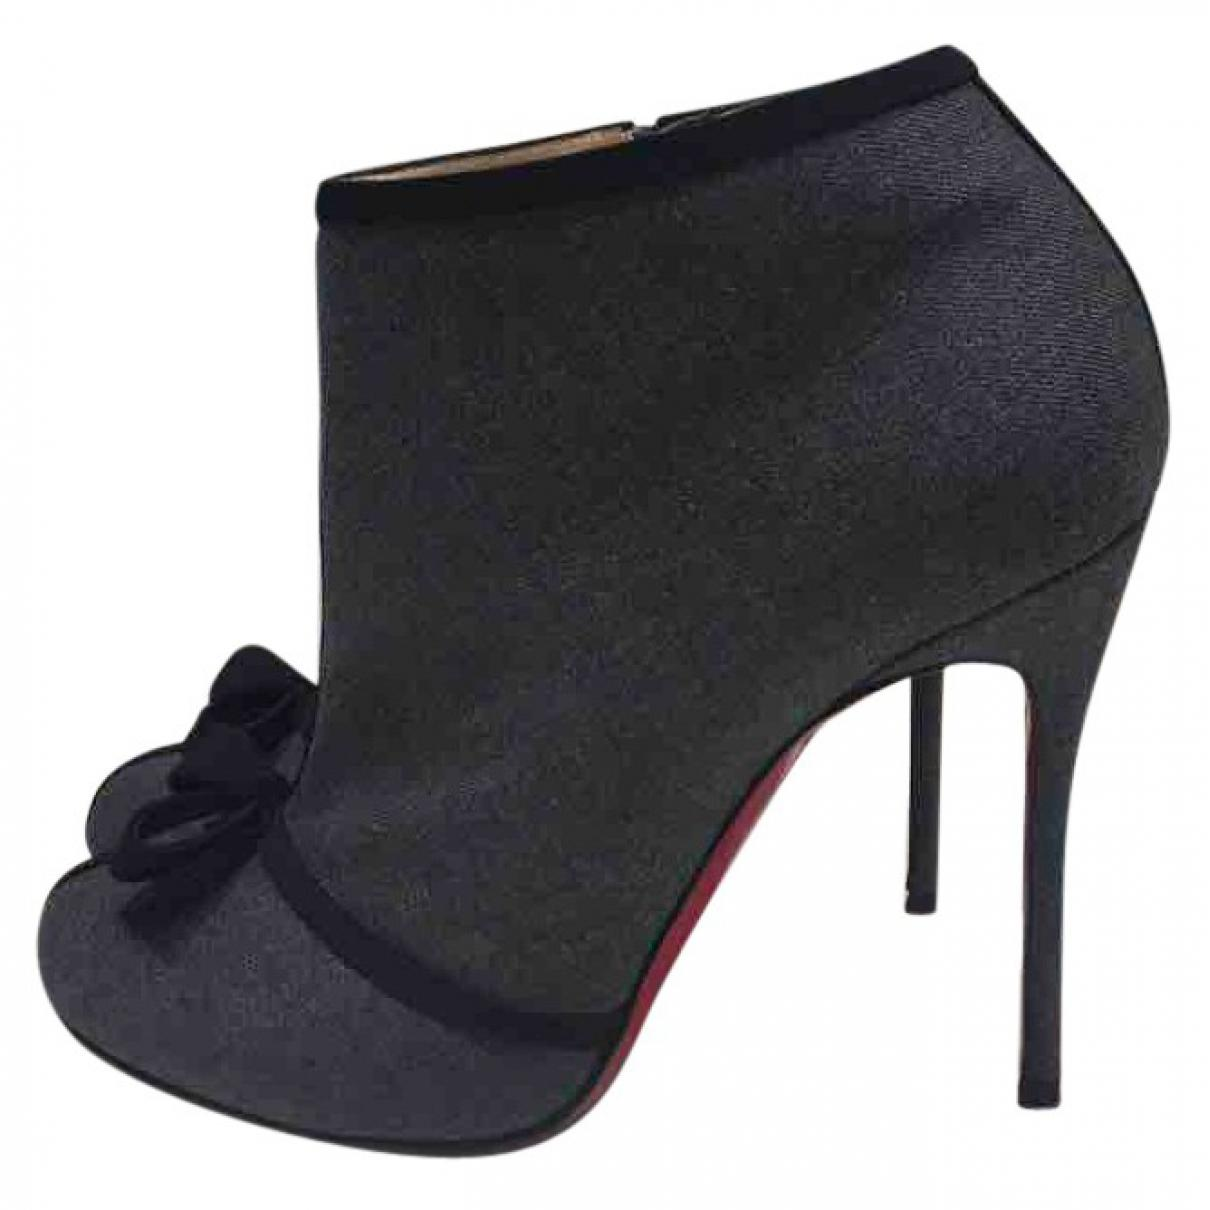 Pre-owned - Cloth ankle boots Christian Louboutin FuwBQSrf